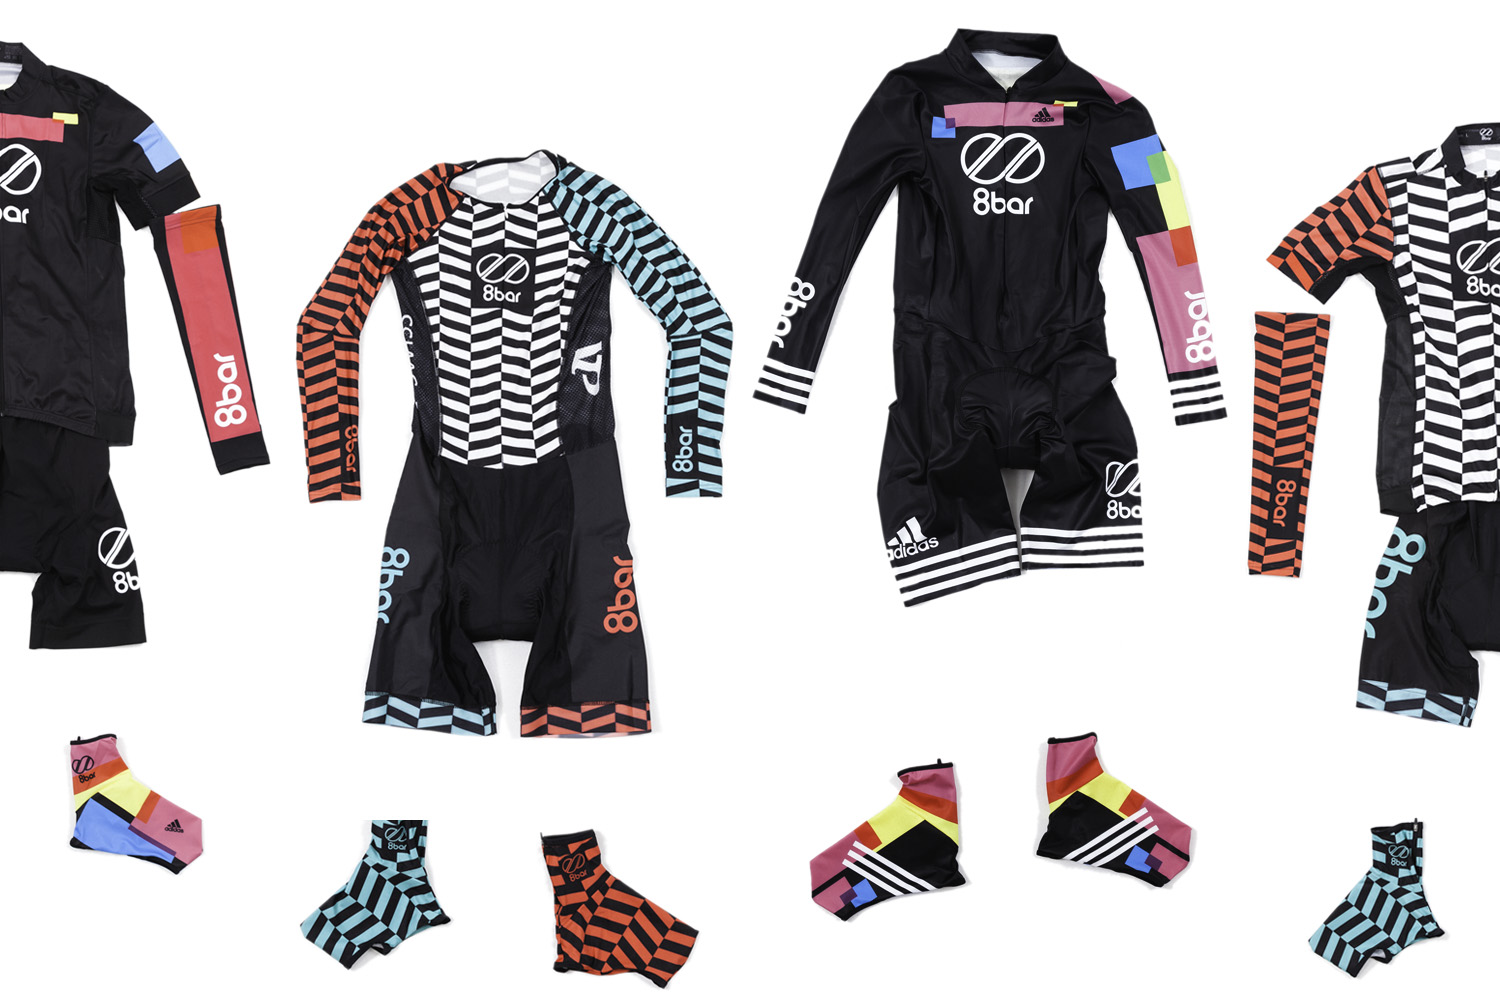 ucc88bersicht 1500x1000 - 8bar cycling apparel now in stock!!!